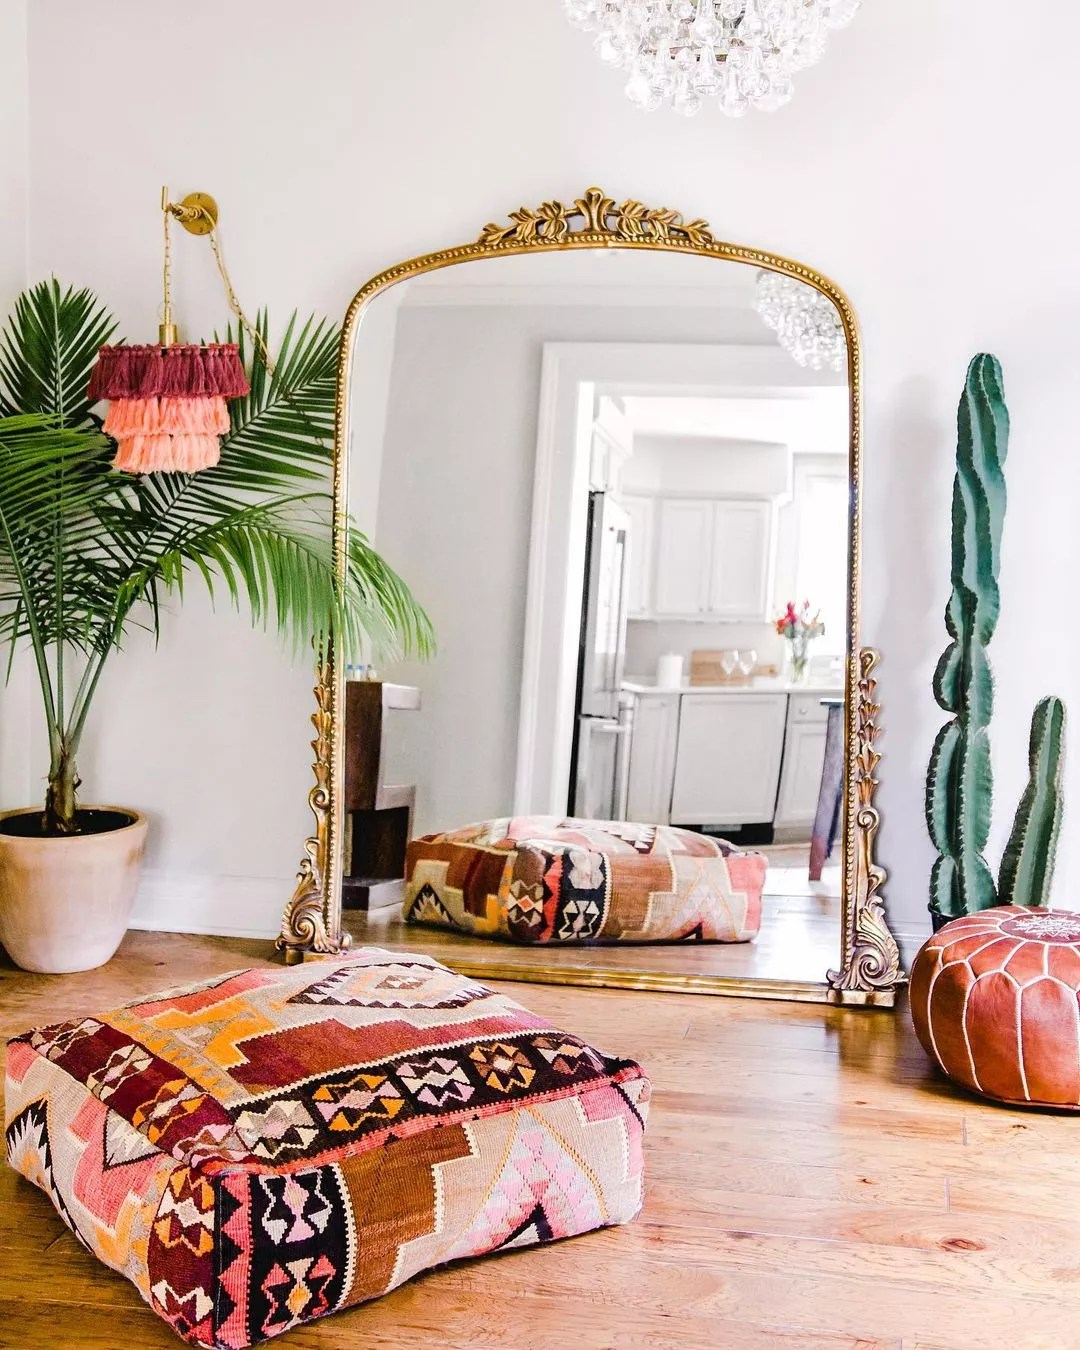 Southwestern-patterned pouf sits in front of a wide floor mirror, which is framed with gold filigree. Photo by Instagram user @alysestudios.